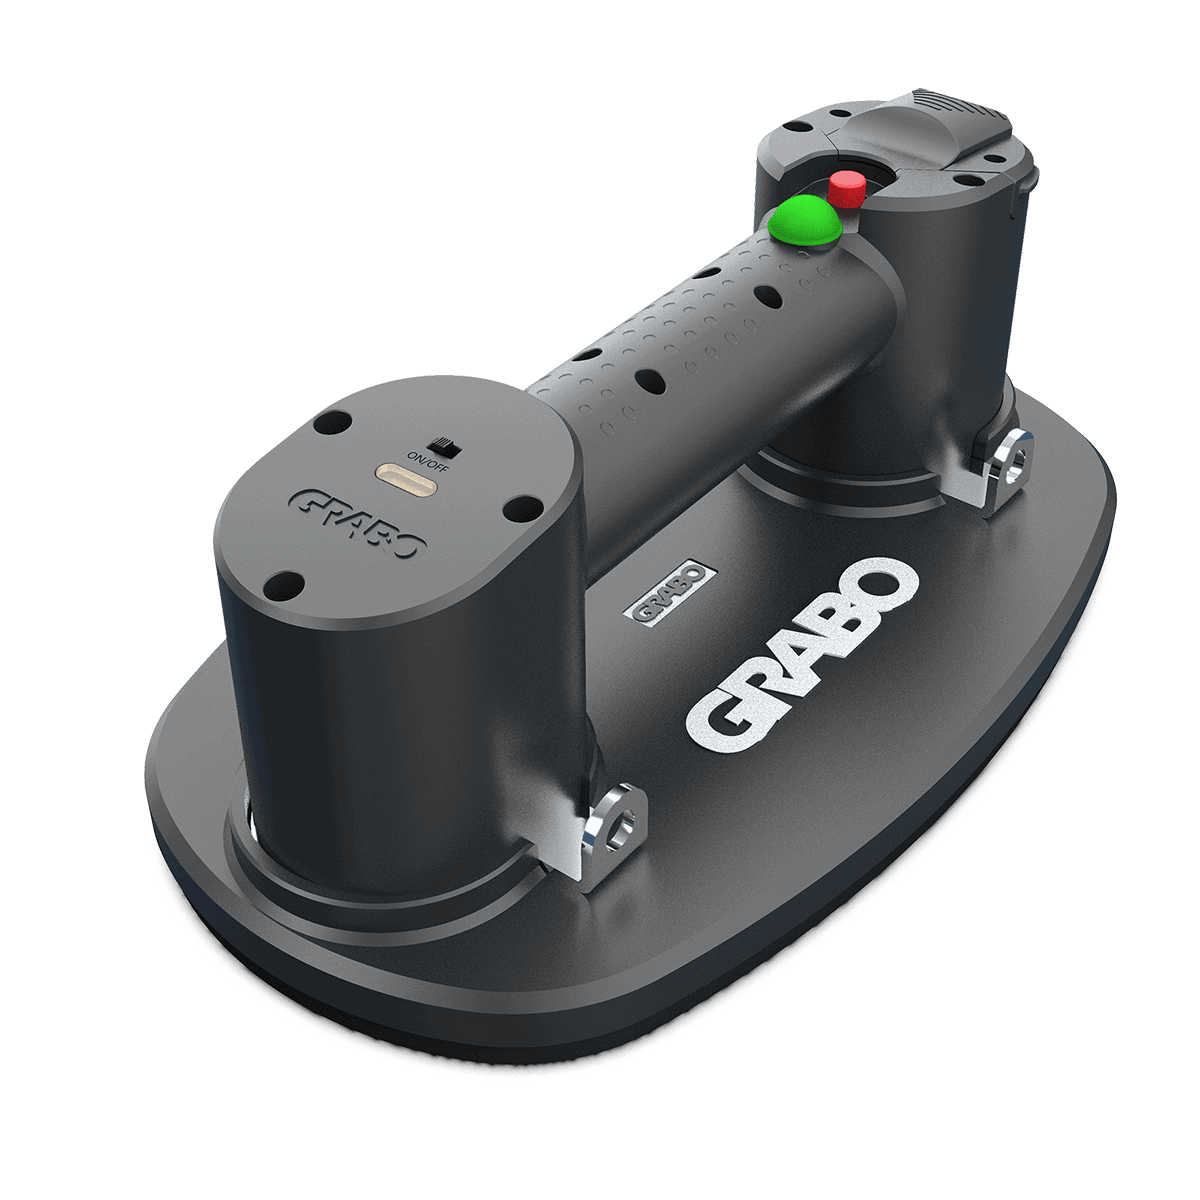 Nemo GRABO Suction Cup